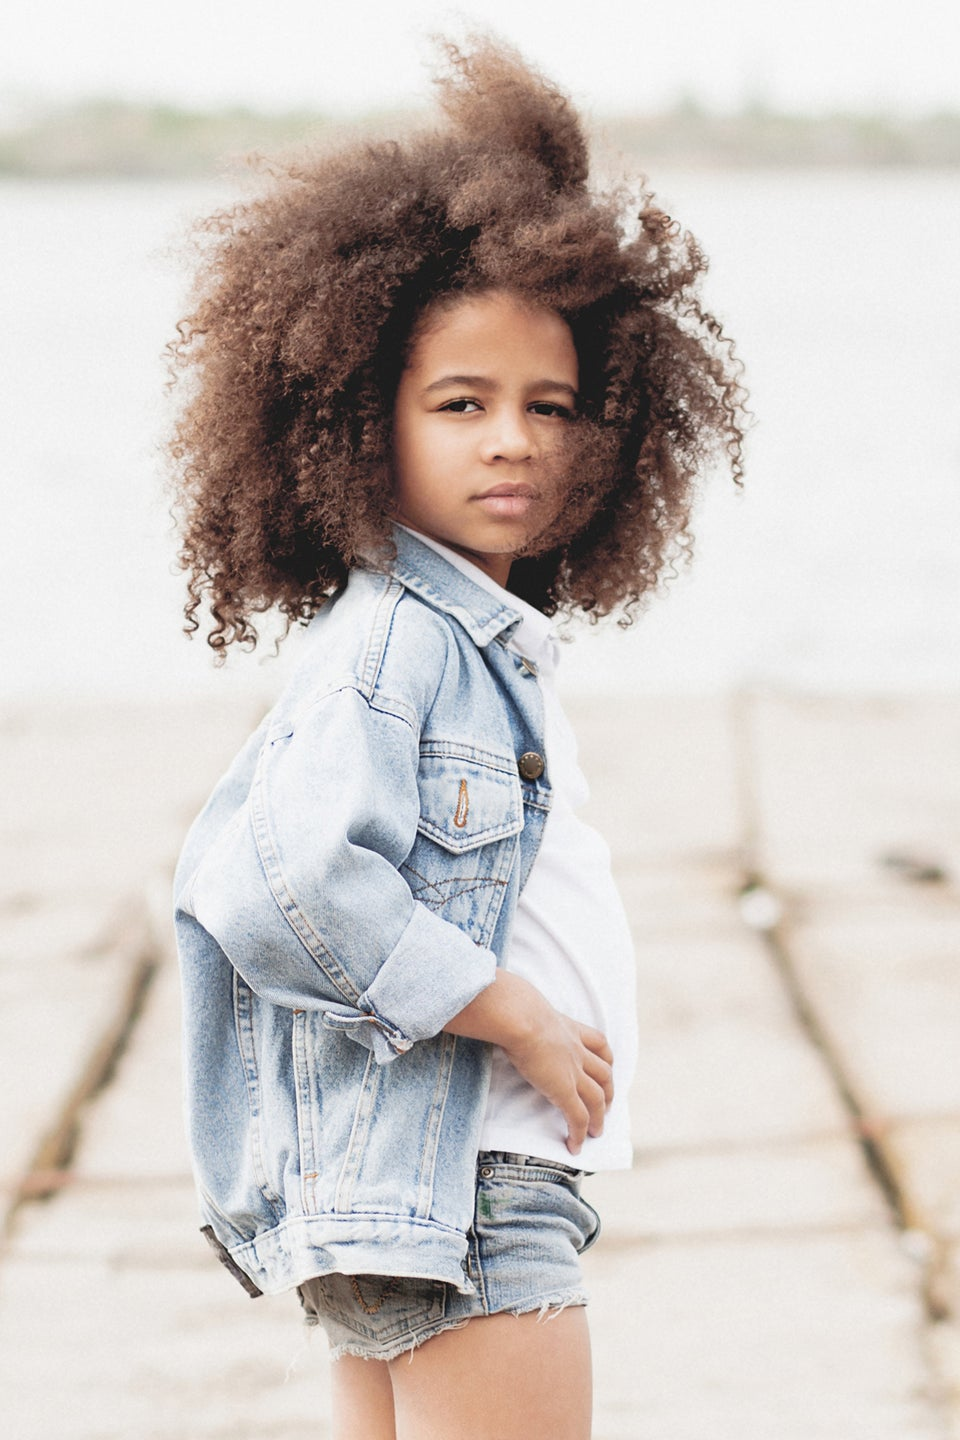 5 Ways To Empower Kids On Their Hair Care Journey